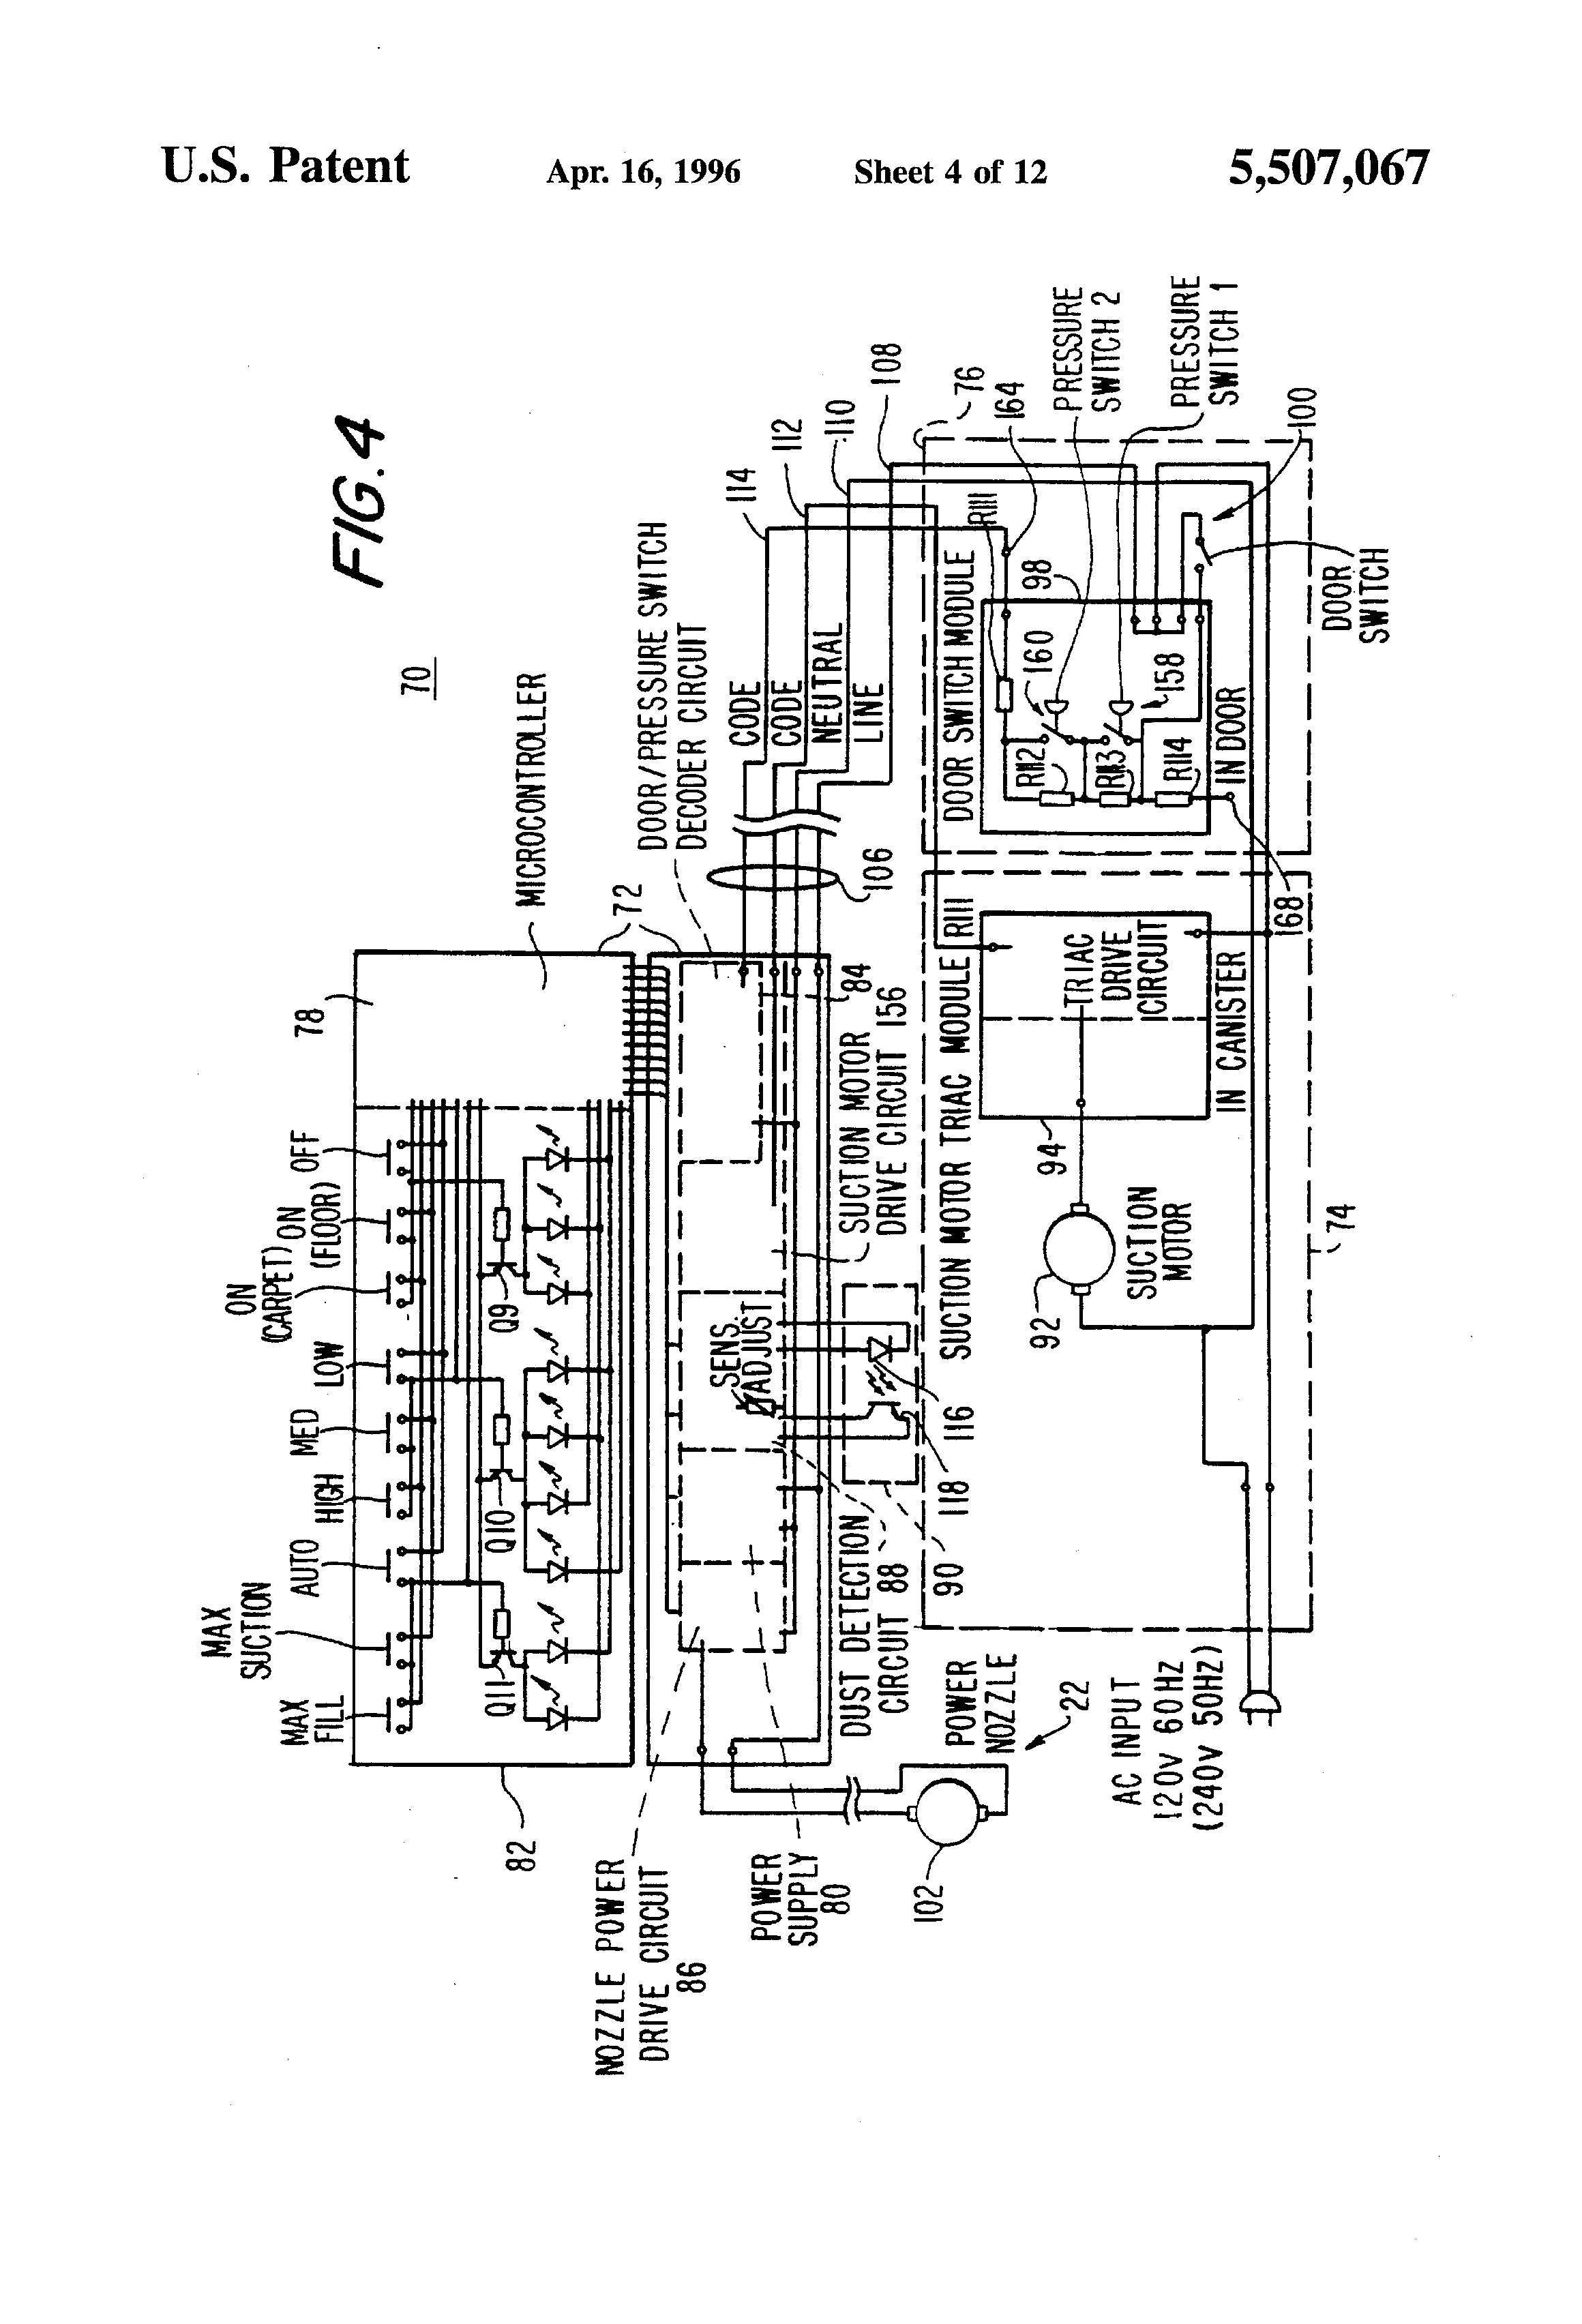 electrolux wiring diagram on vacuum for toyota radio patent us5507067 electronic cleaner control